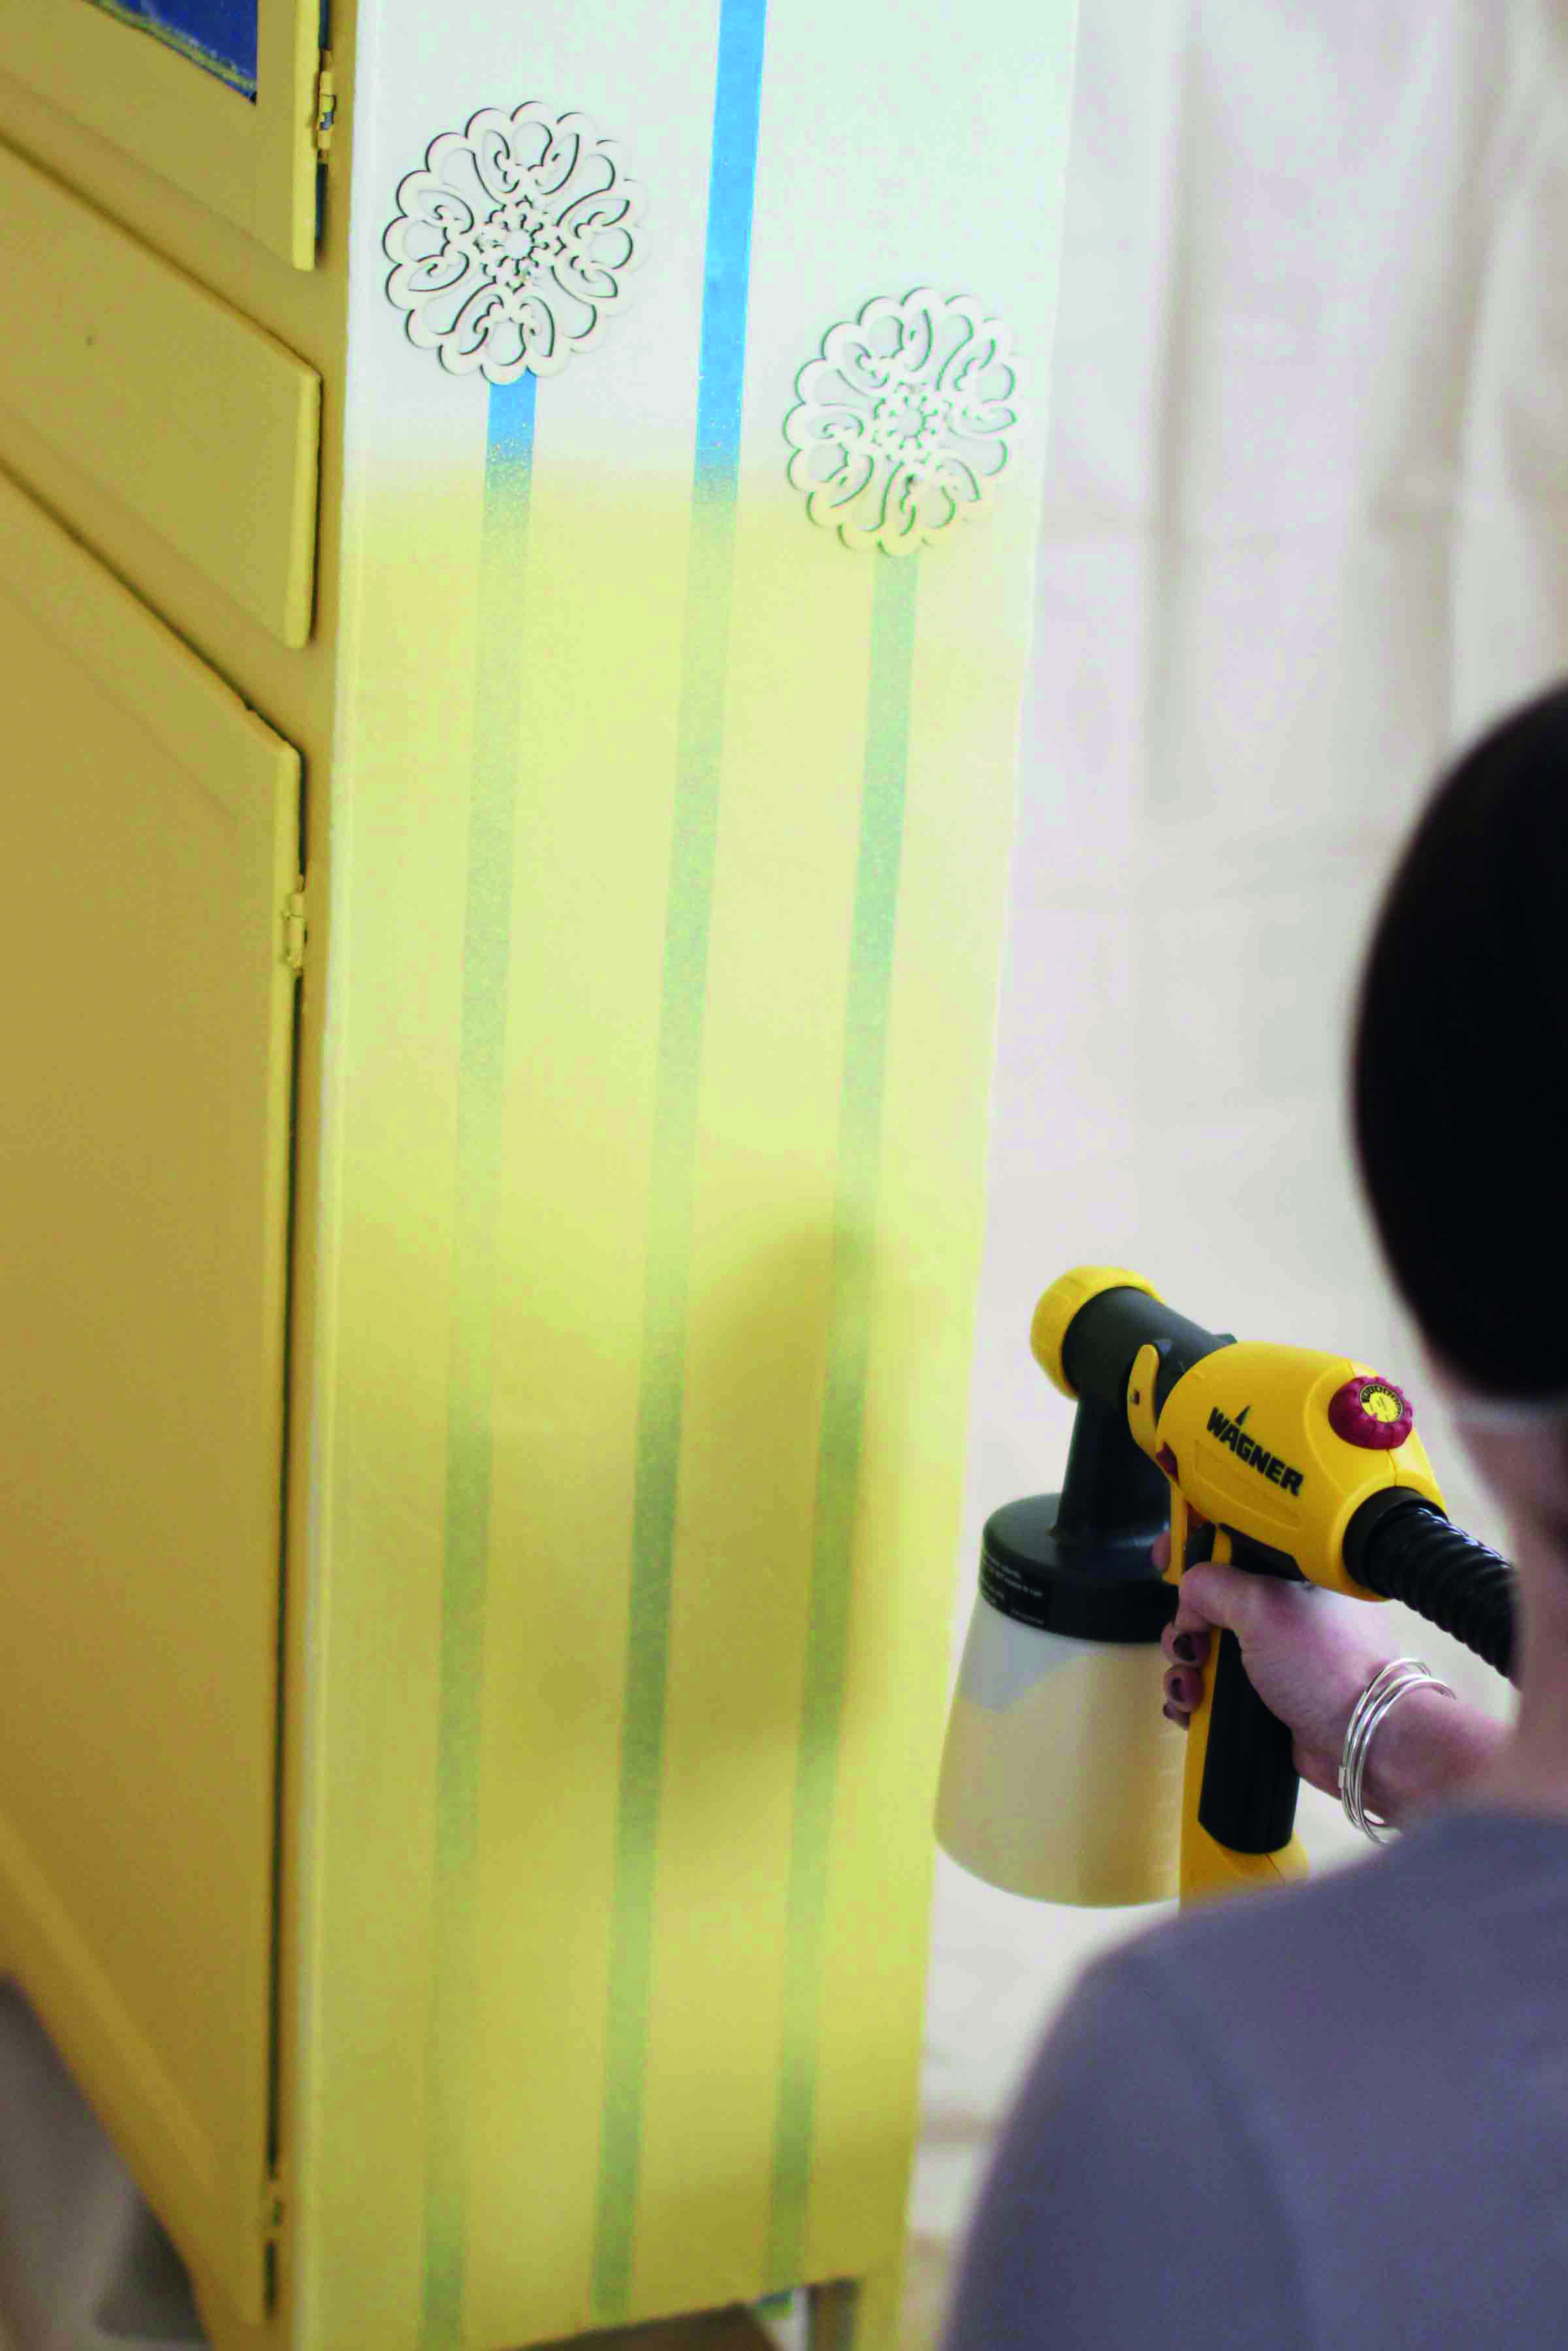 Spraying the wardrobe with flower template